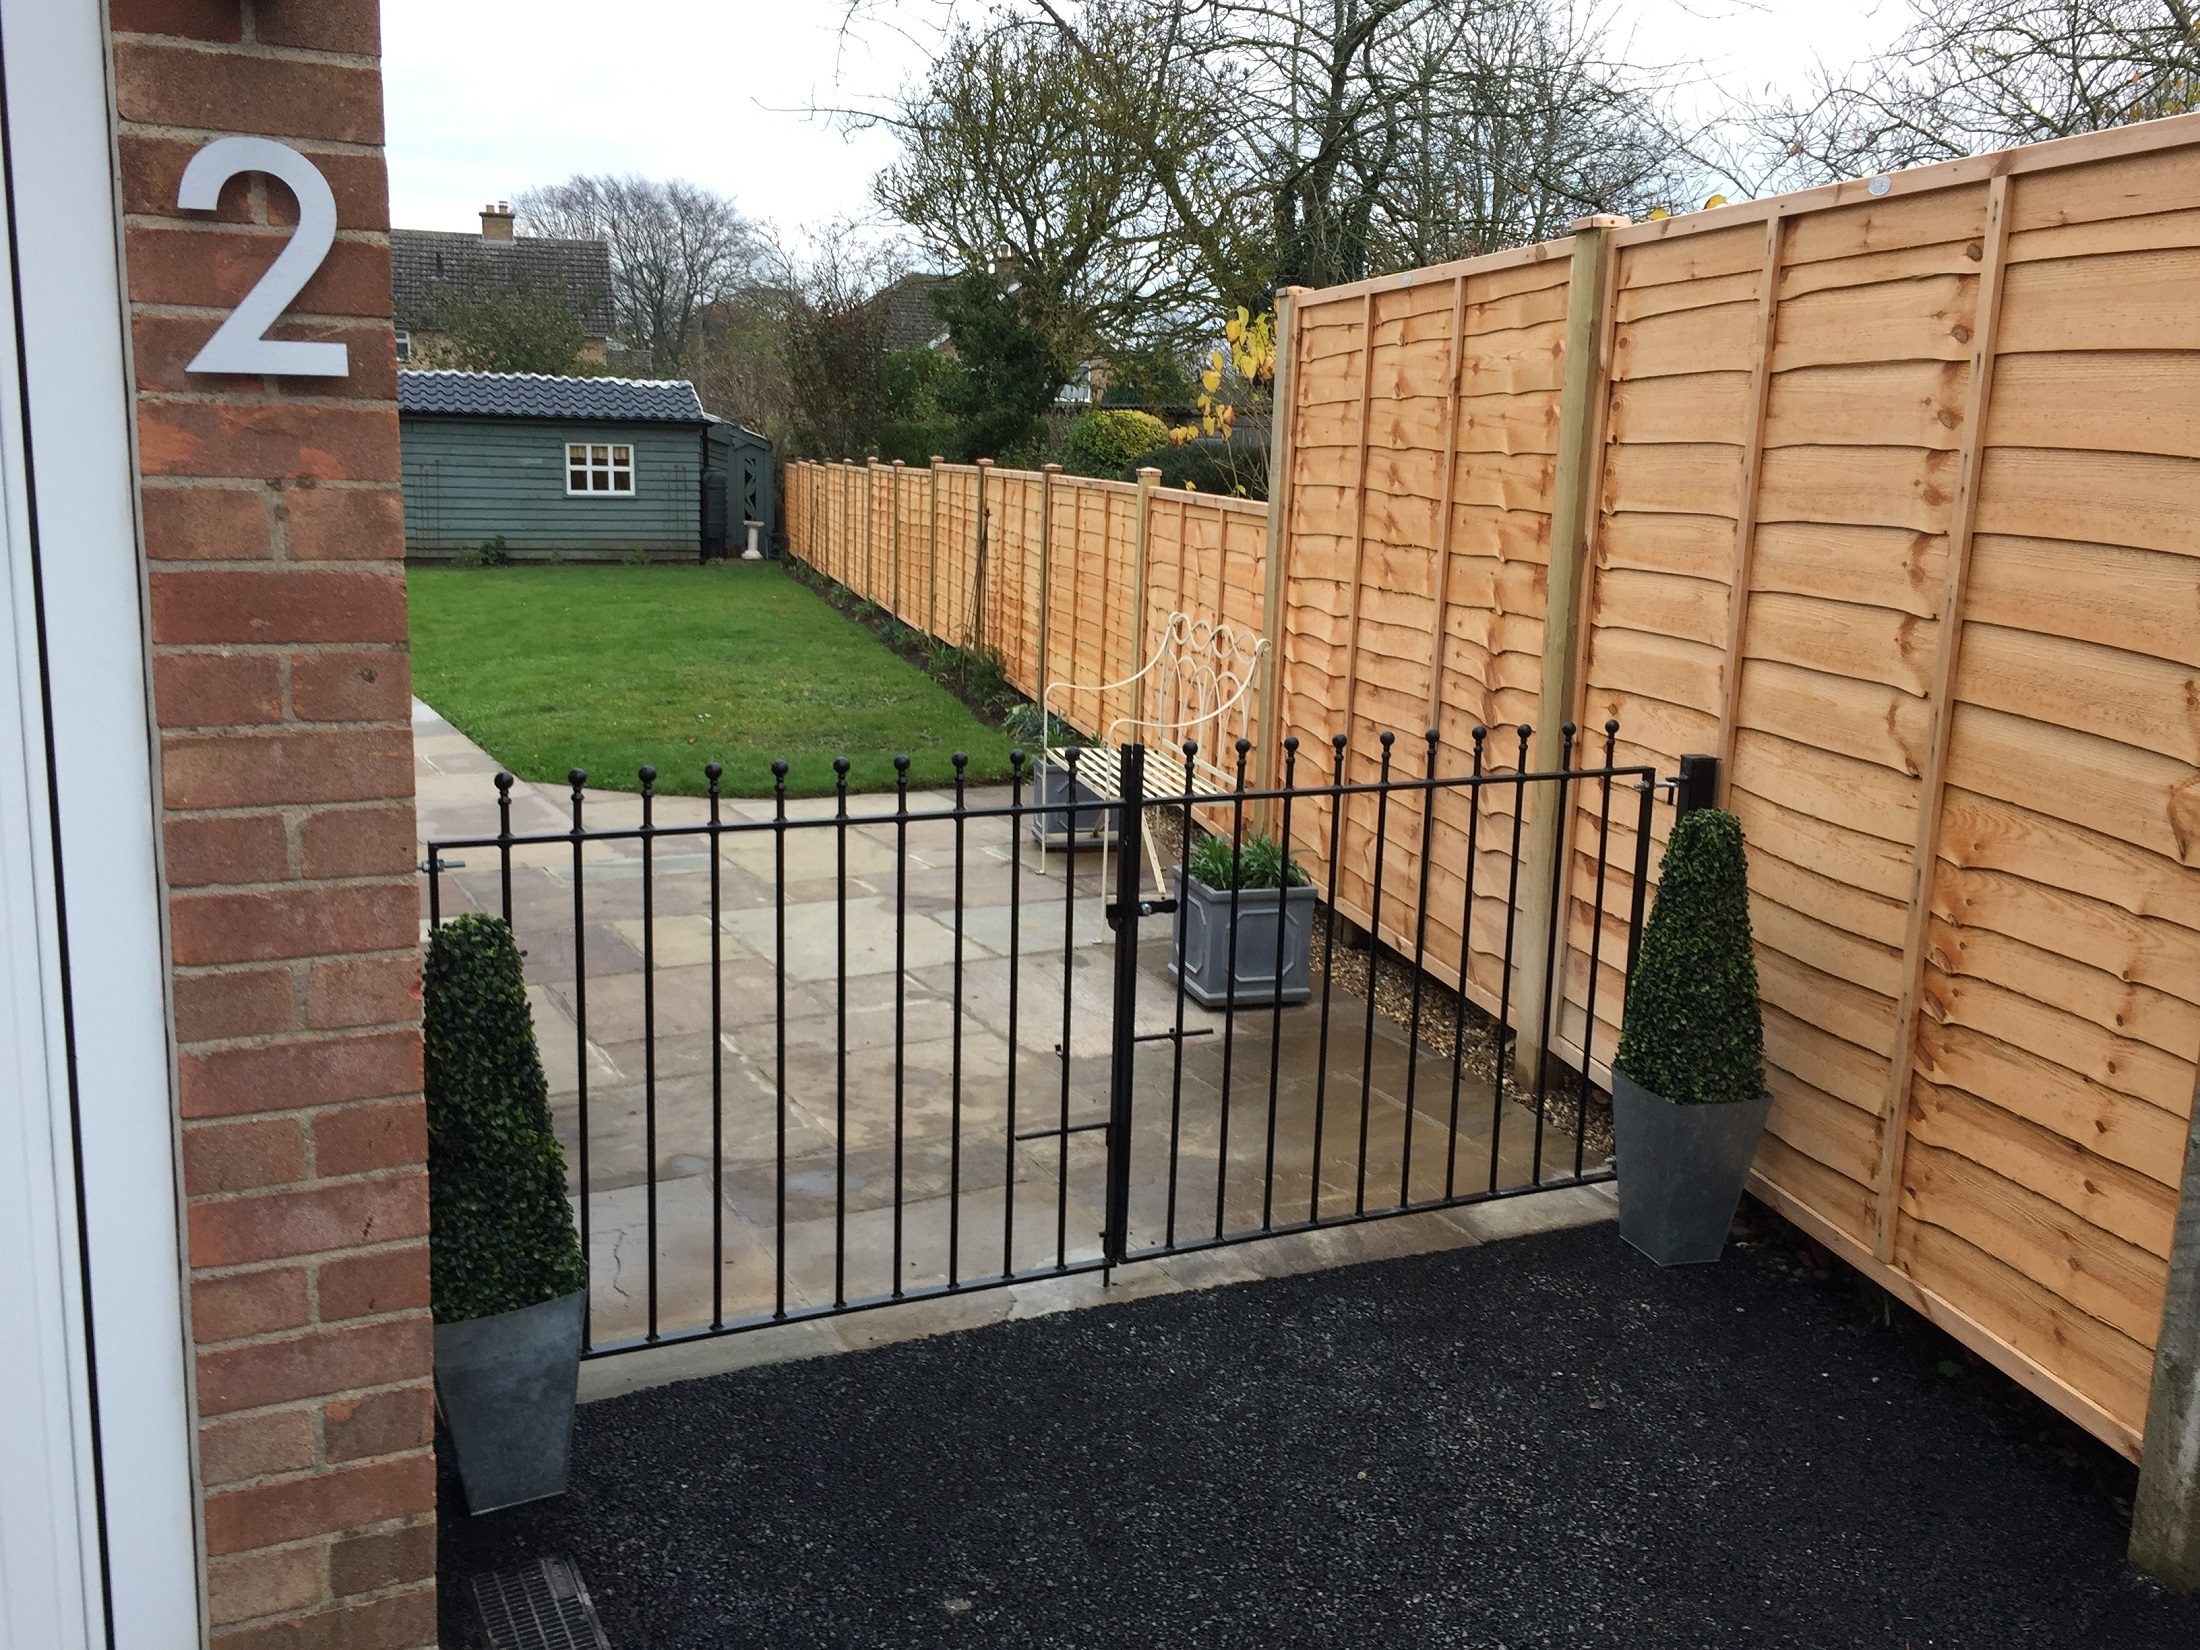 Manor metal driveway gates fitted between house wall and wooden fence panels